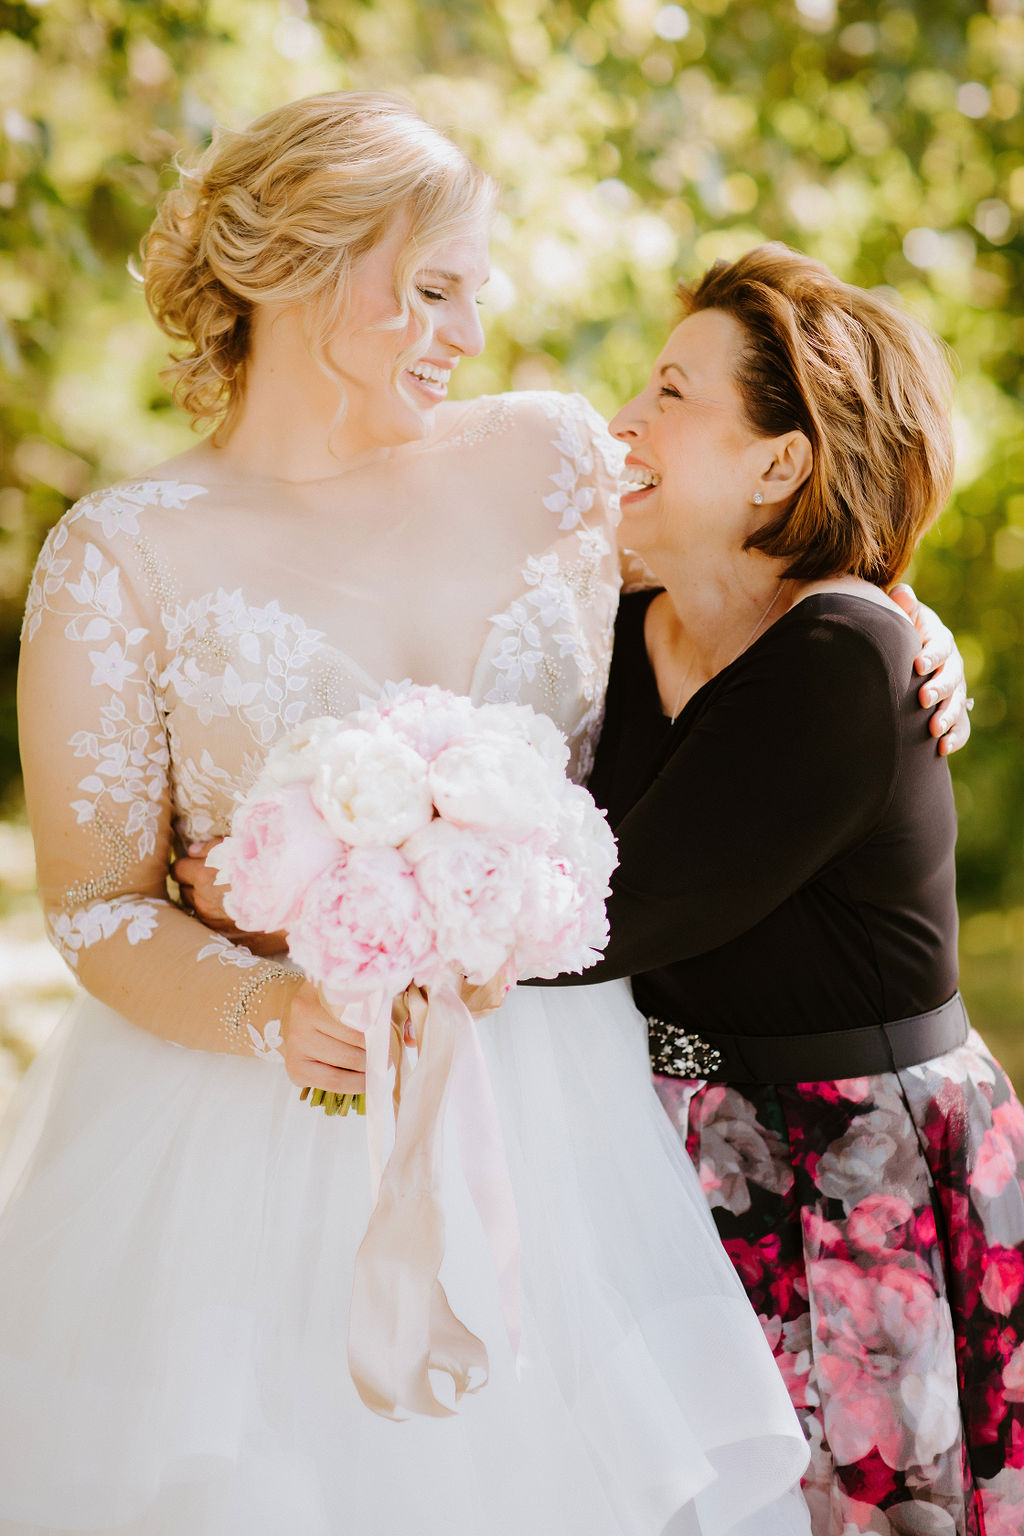 Bride with peonies bouquet laughing with mom, portrait photo by Abby Rose Photography - How mom can help with wedding planning - Leah E. Moss Designs